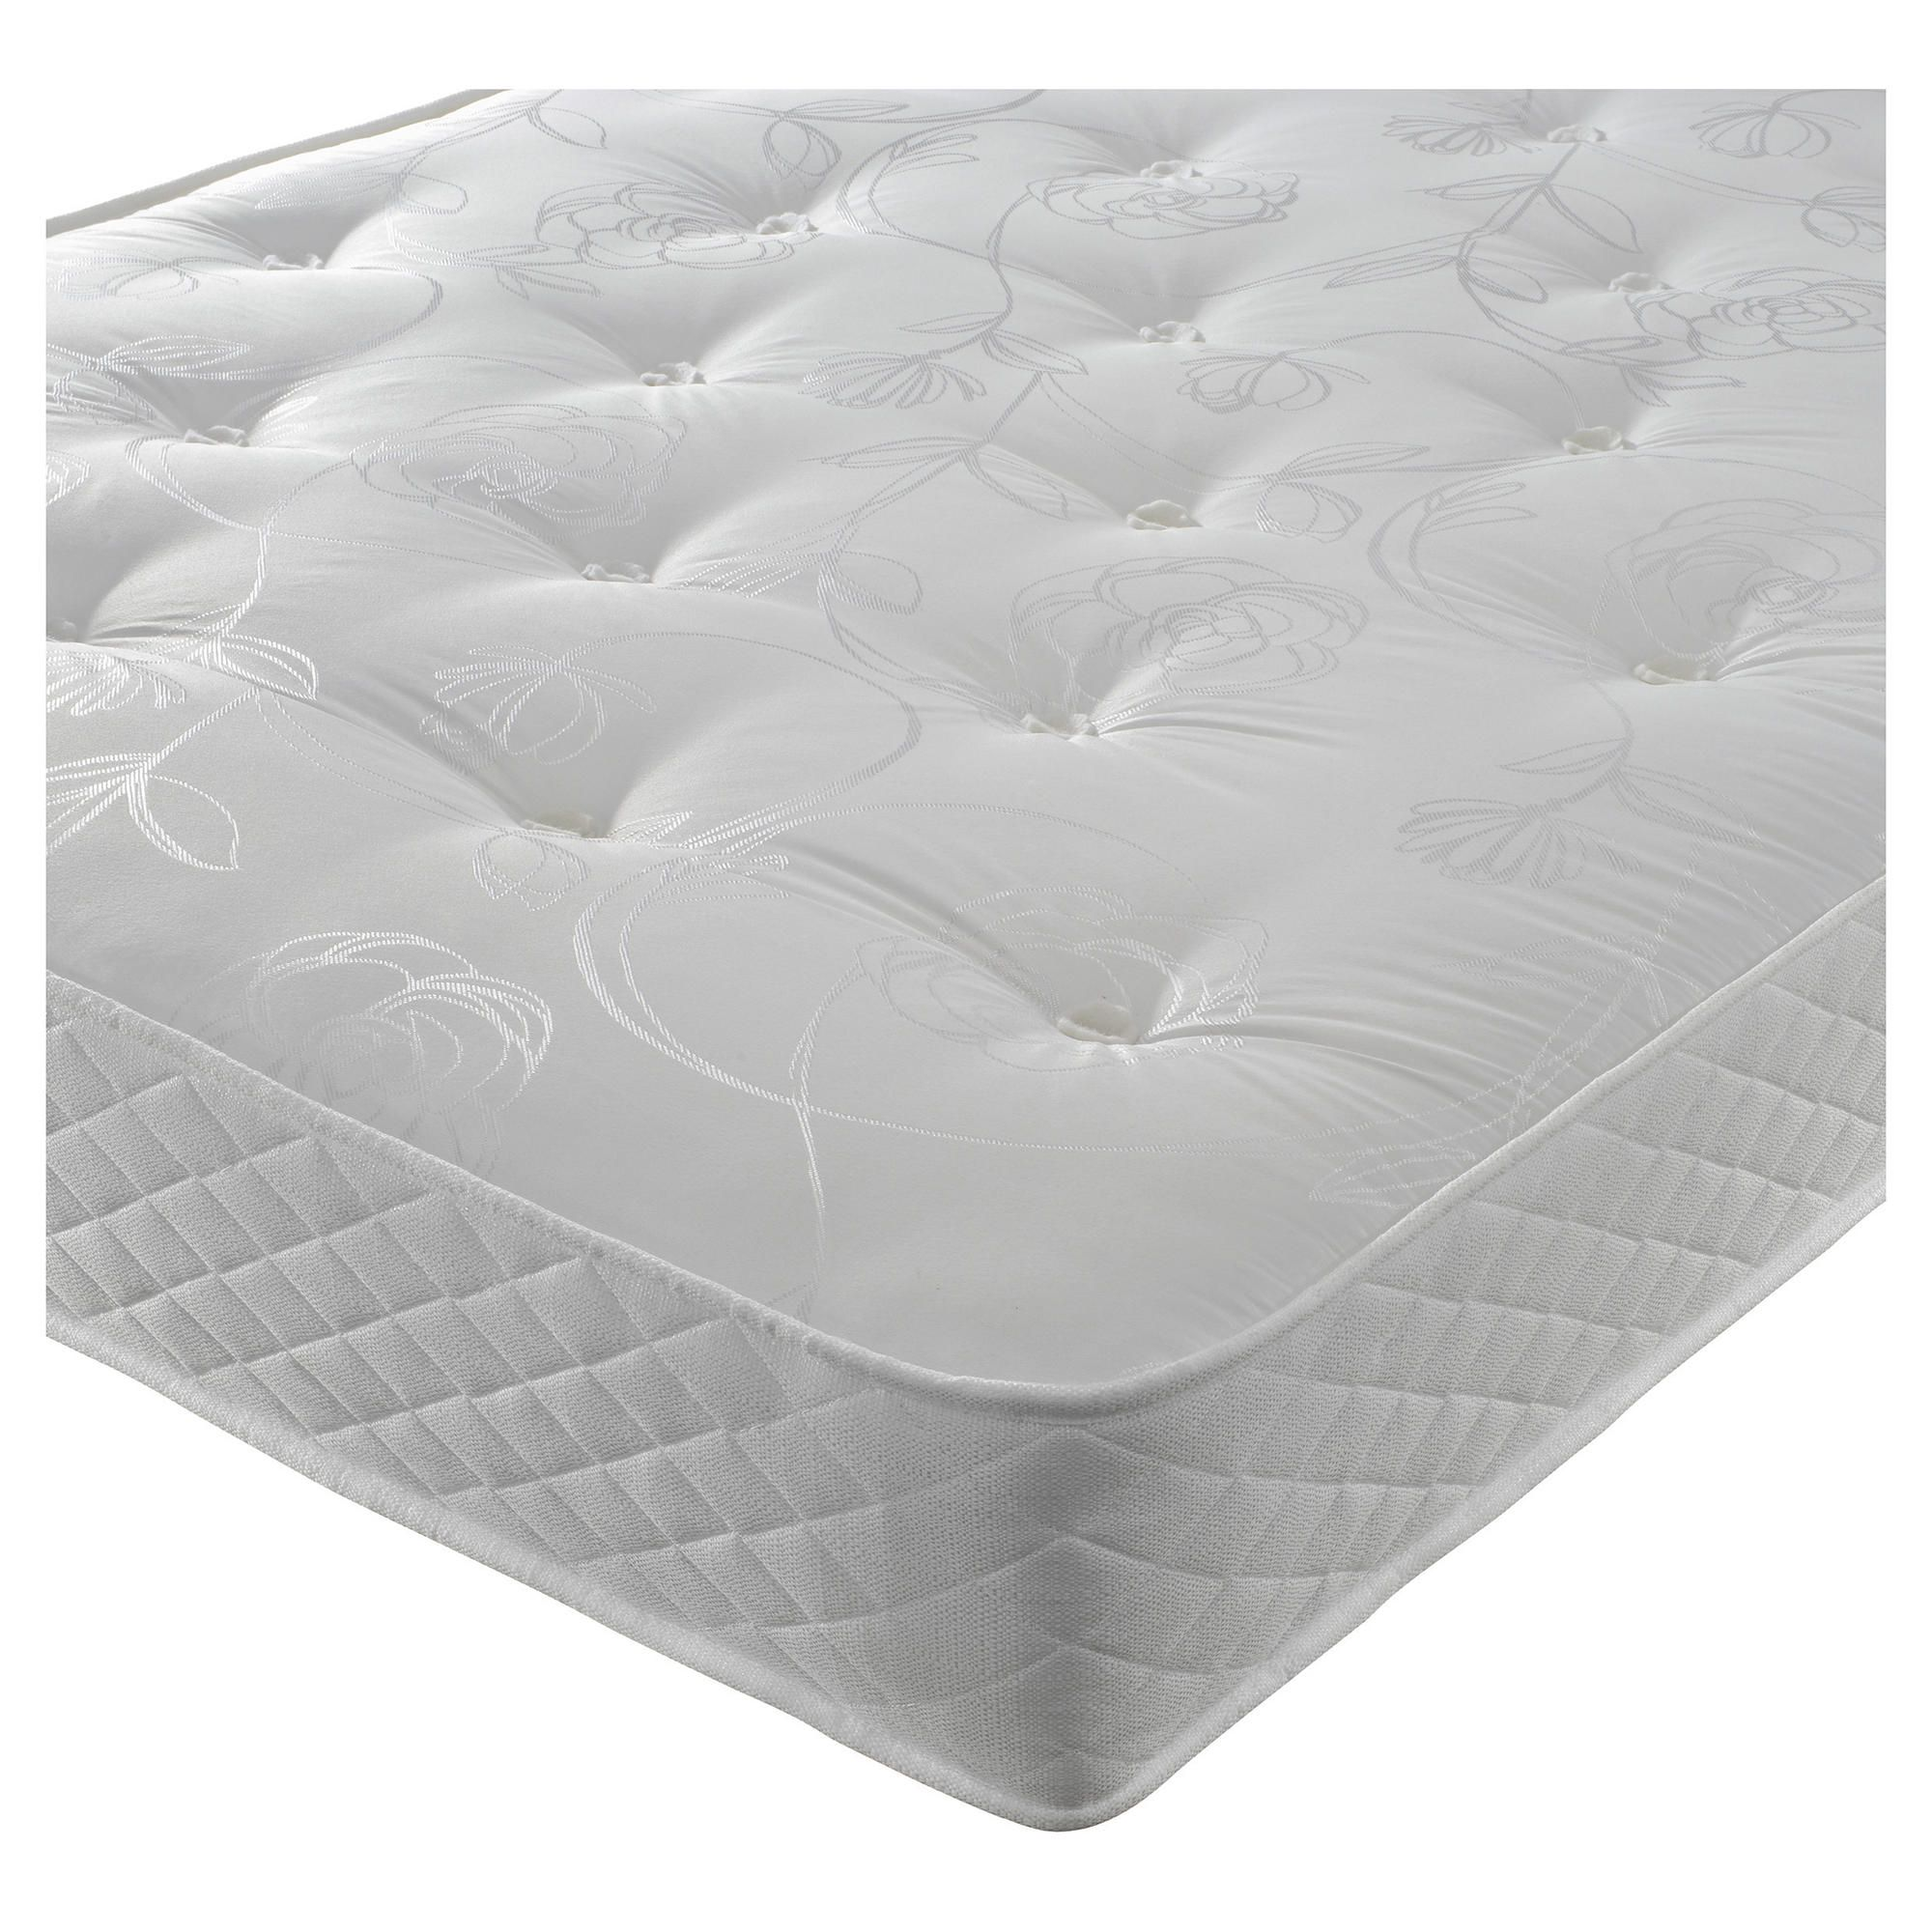 Silentnight Miracoil Comfort Ortho Tuft Super King Size Mattress at Tesco Direct